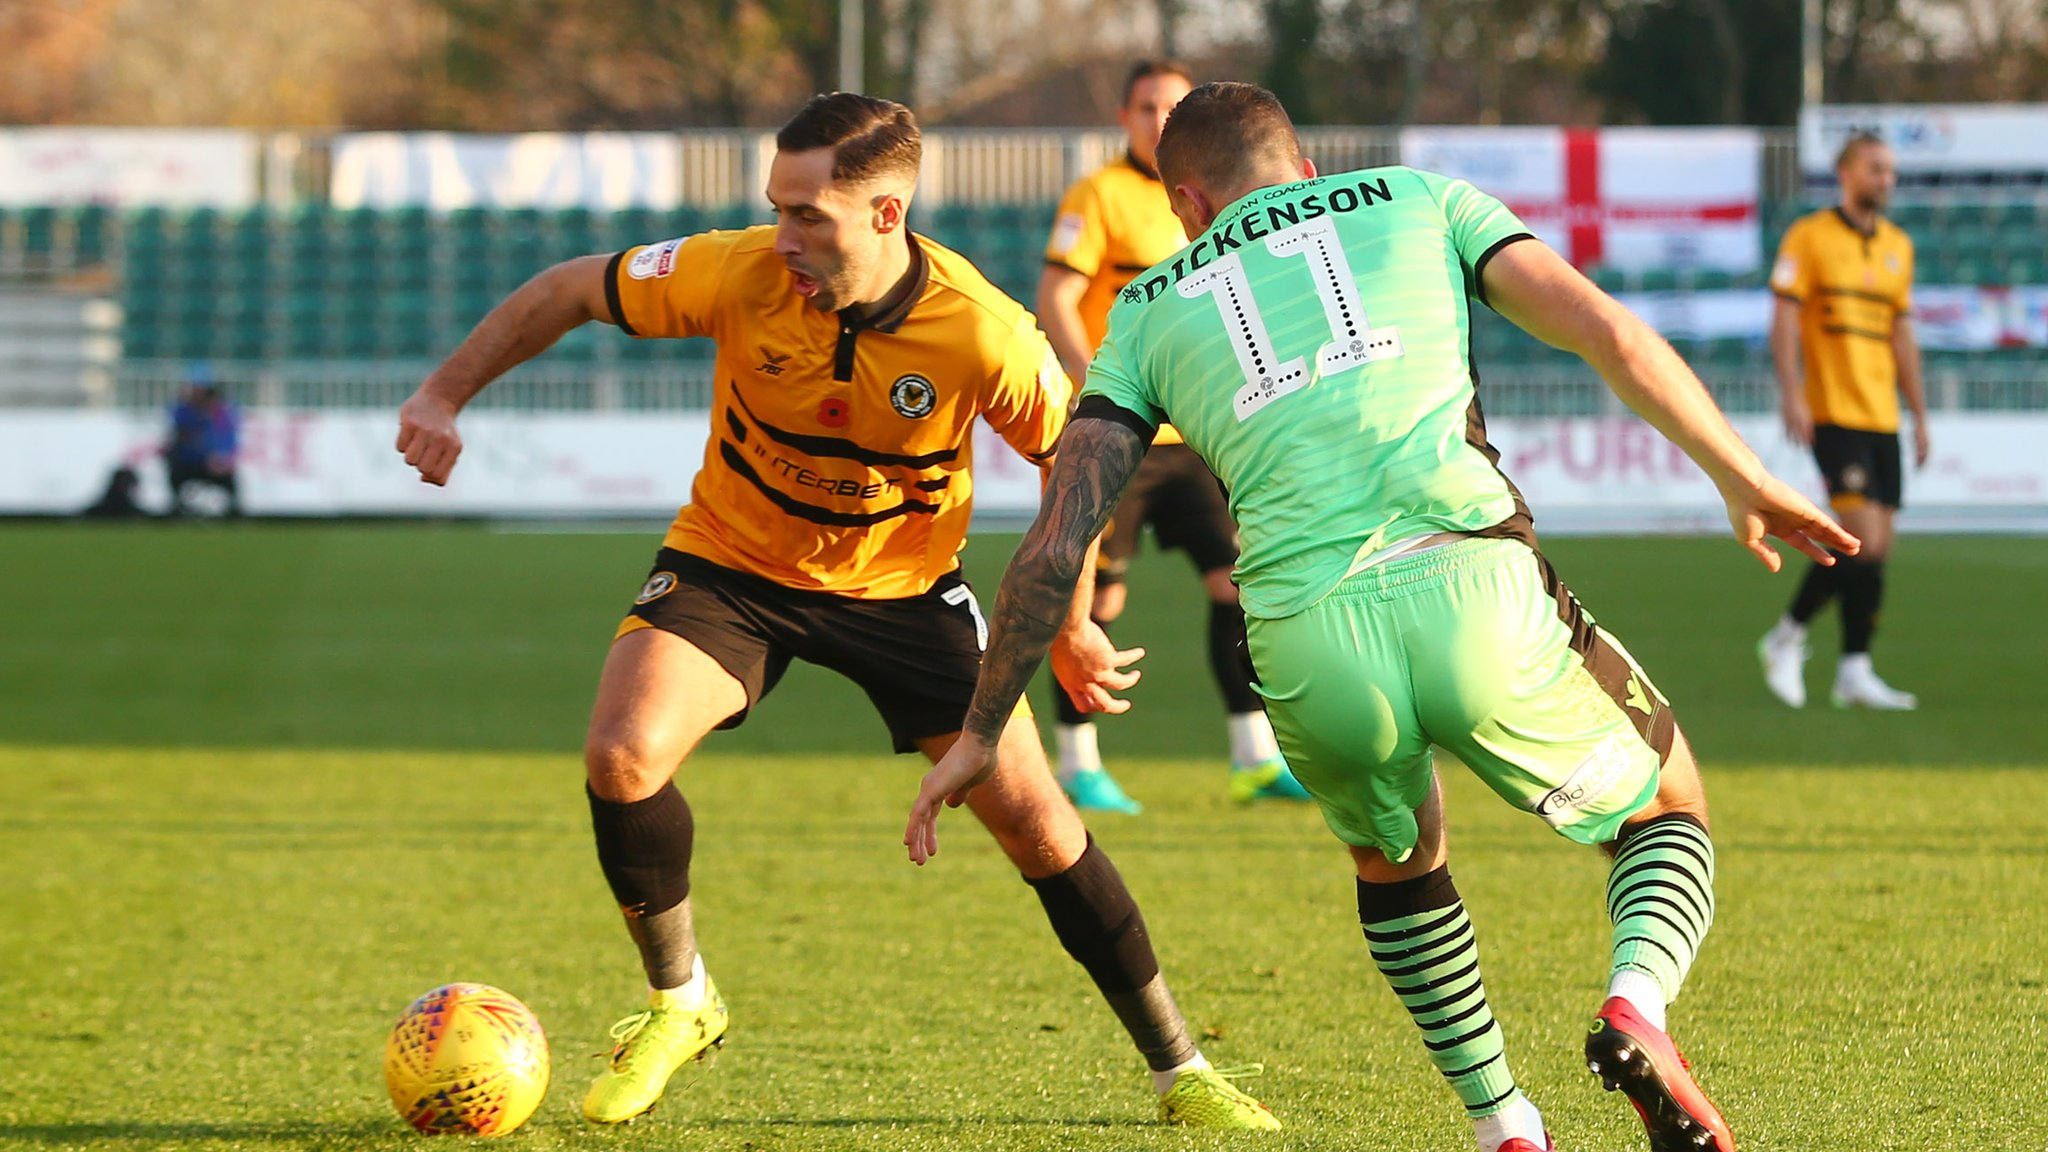 Newport County 2-0 Colchester United